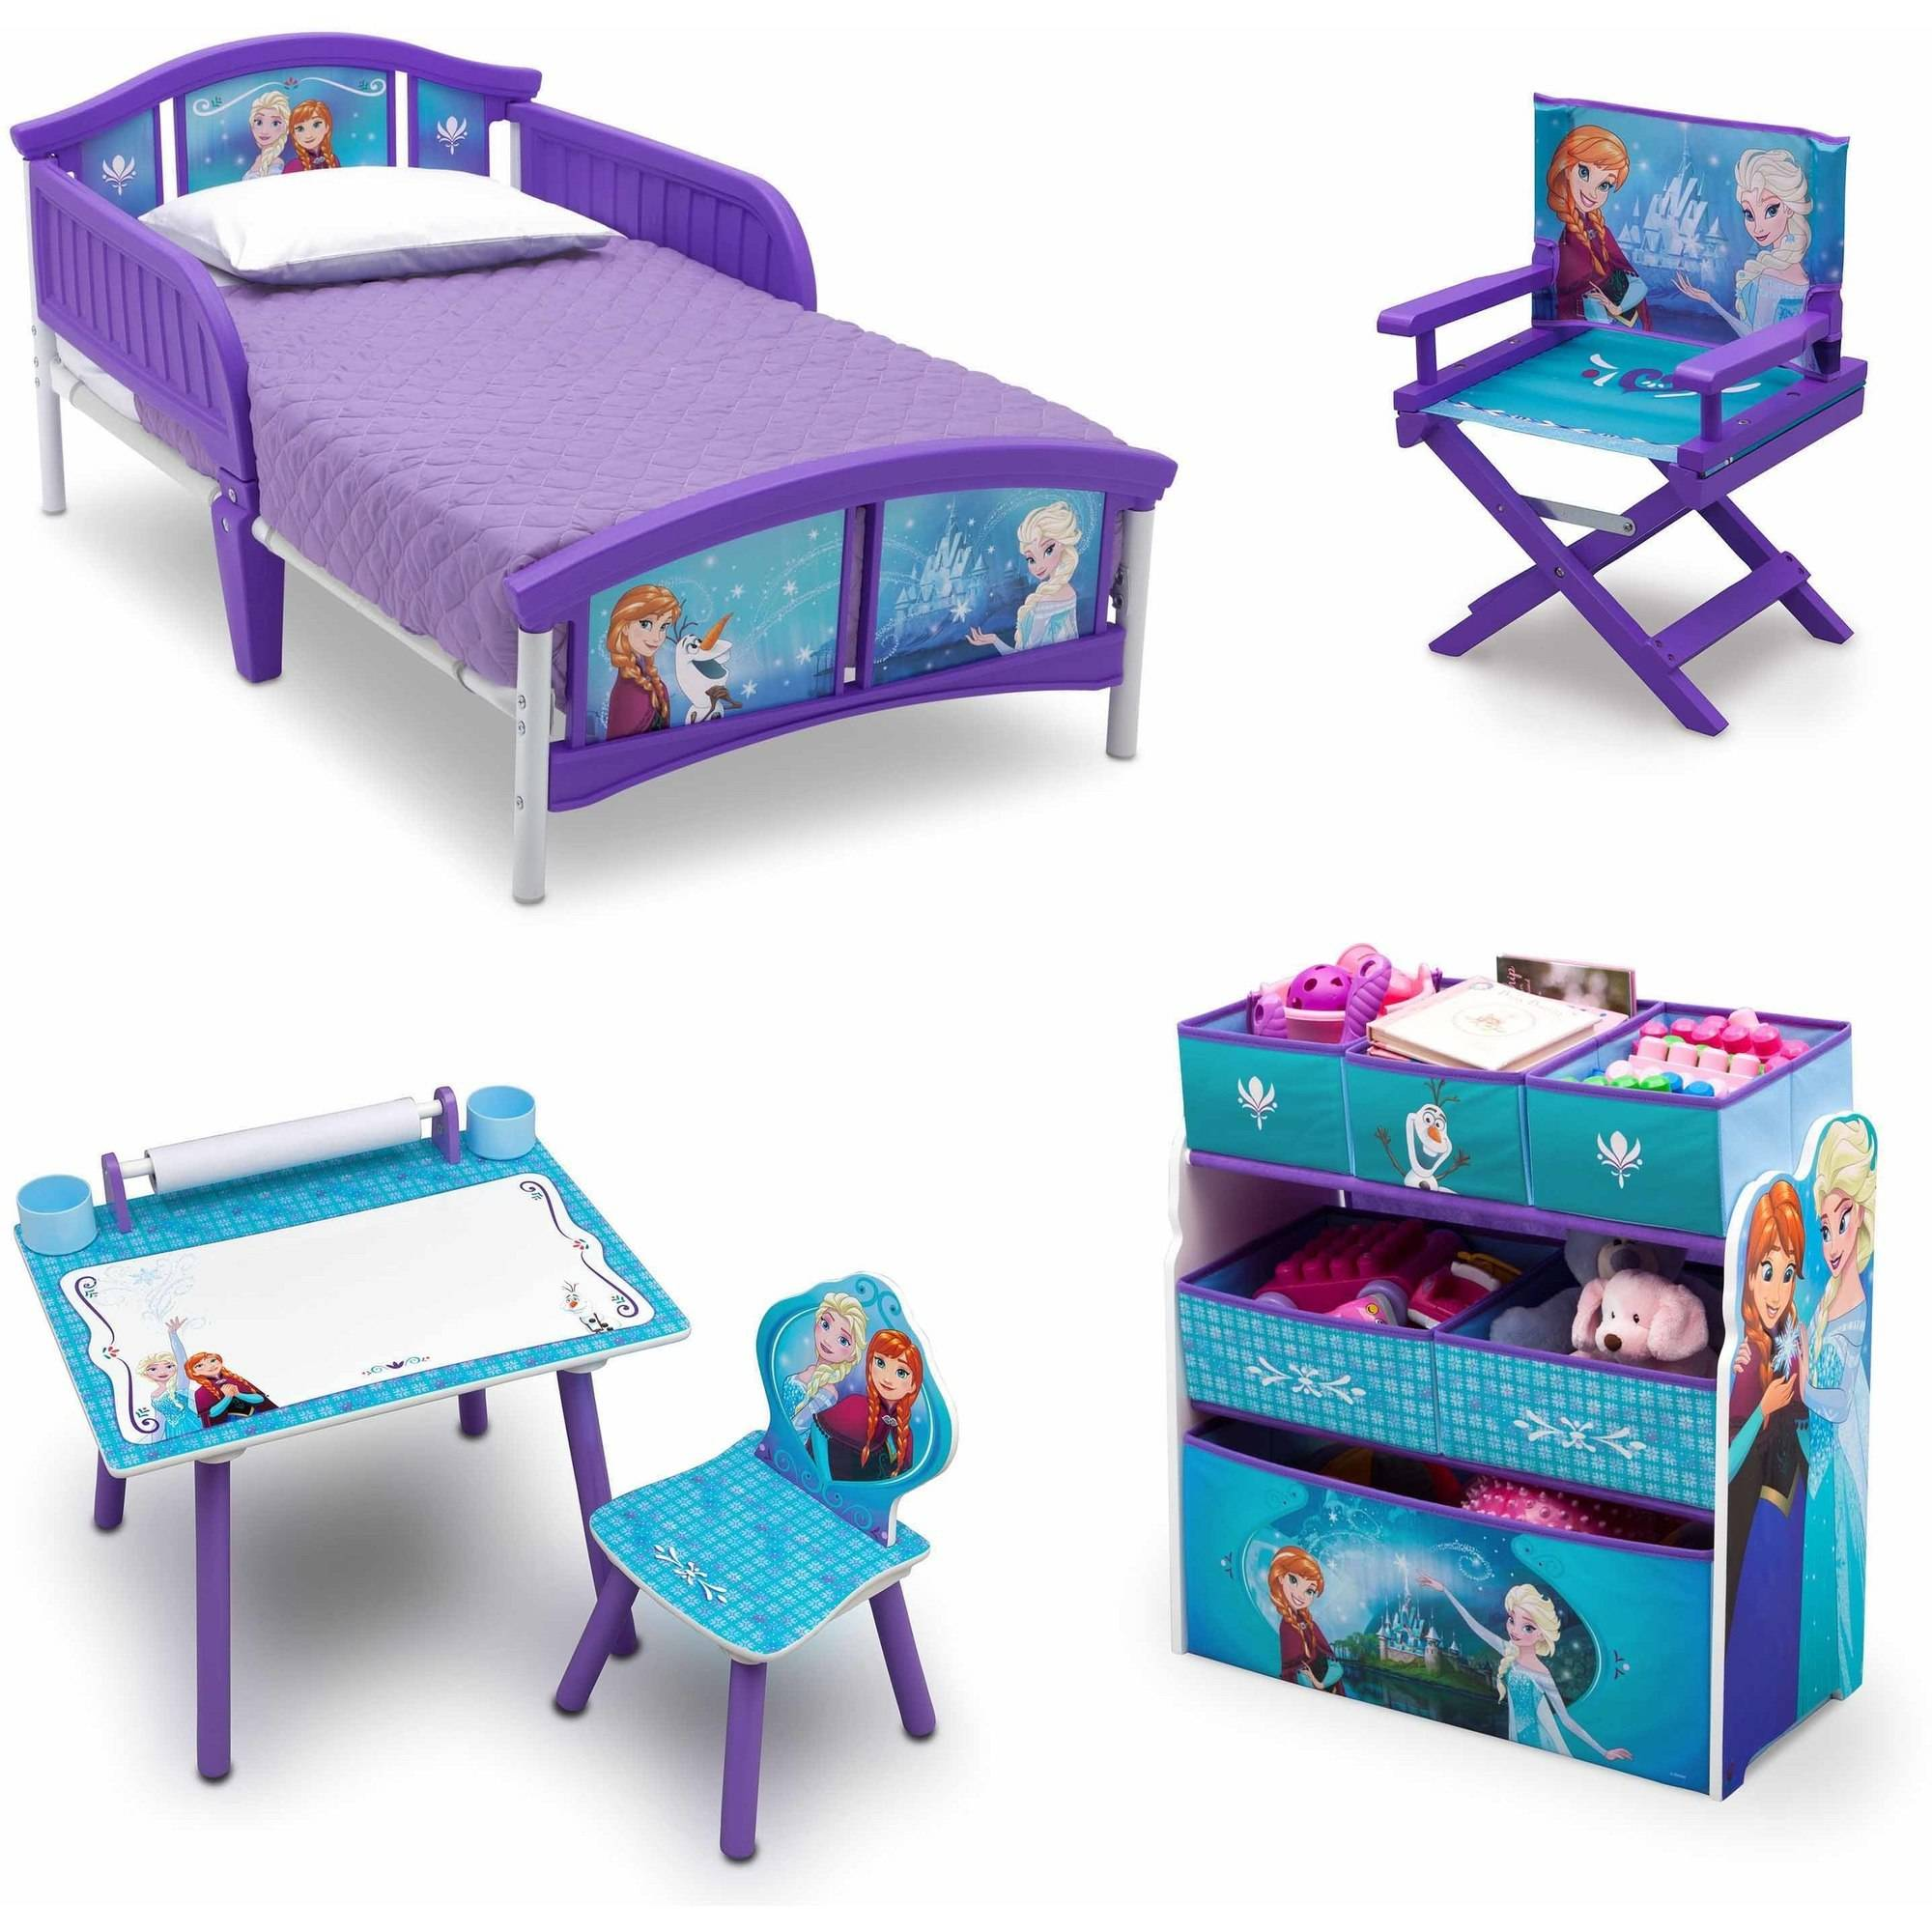 Disney Frozen Room In A Box With Bonus Chair   Walmart.com